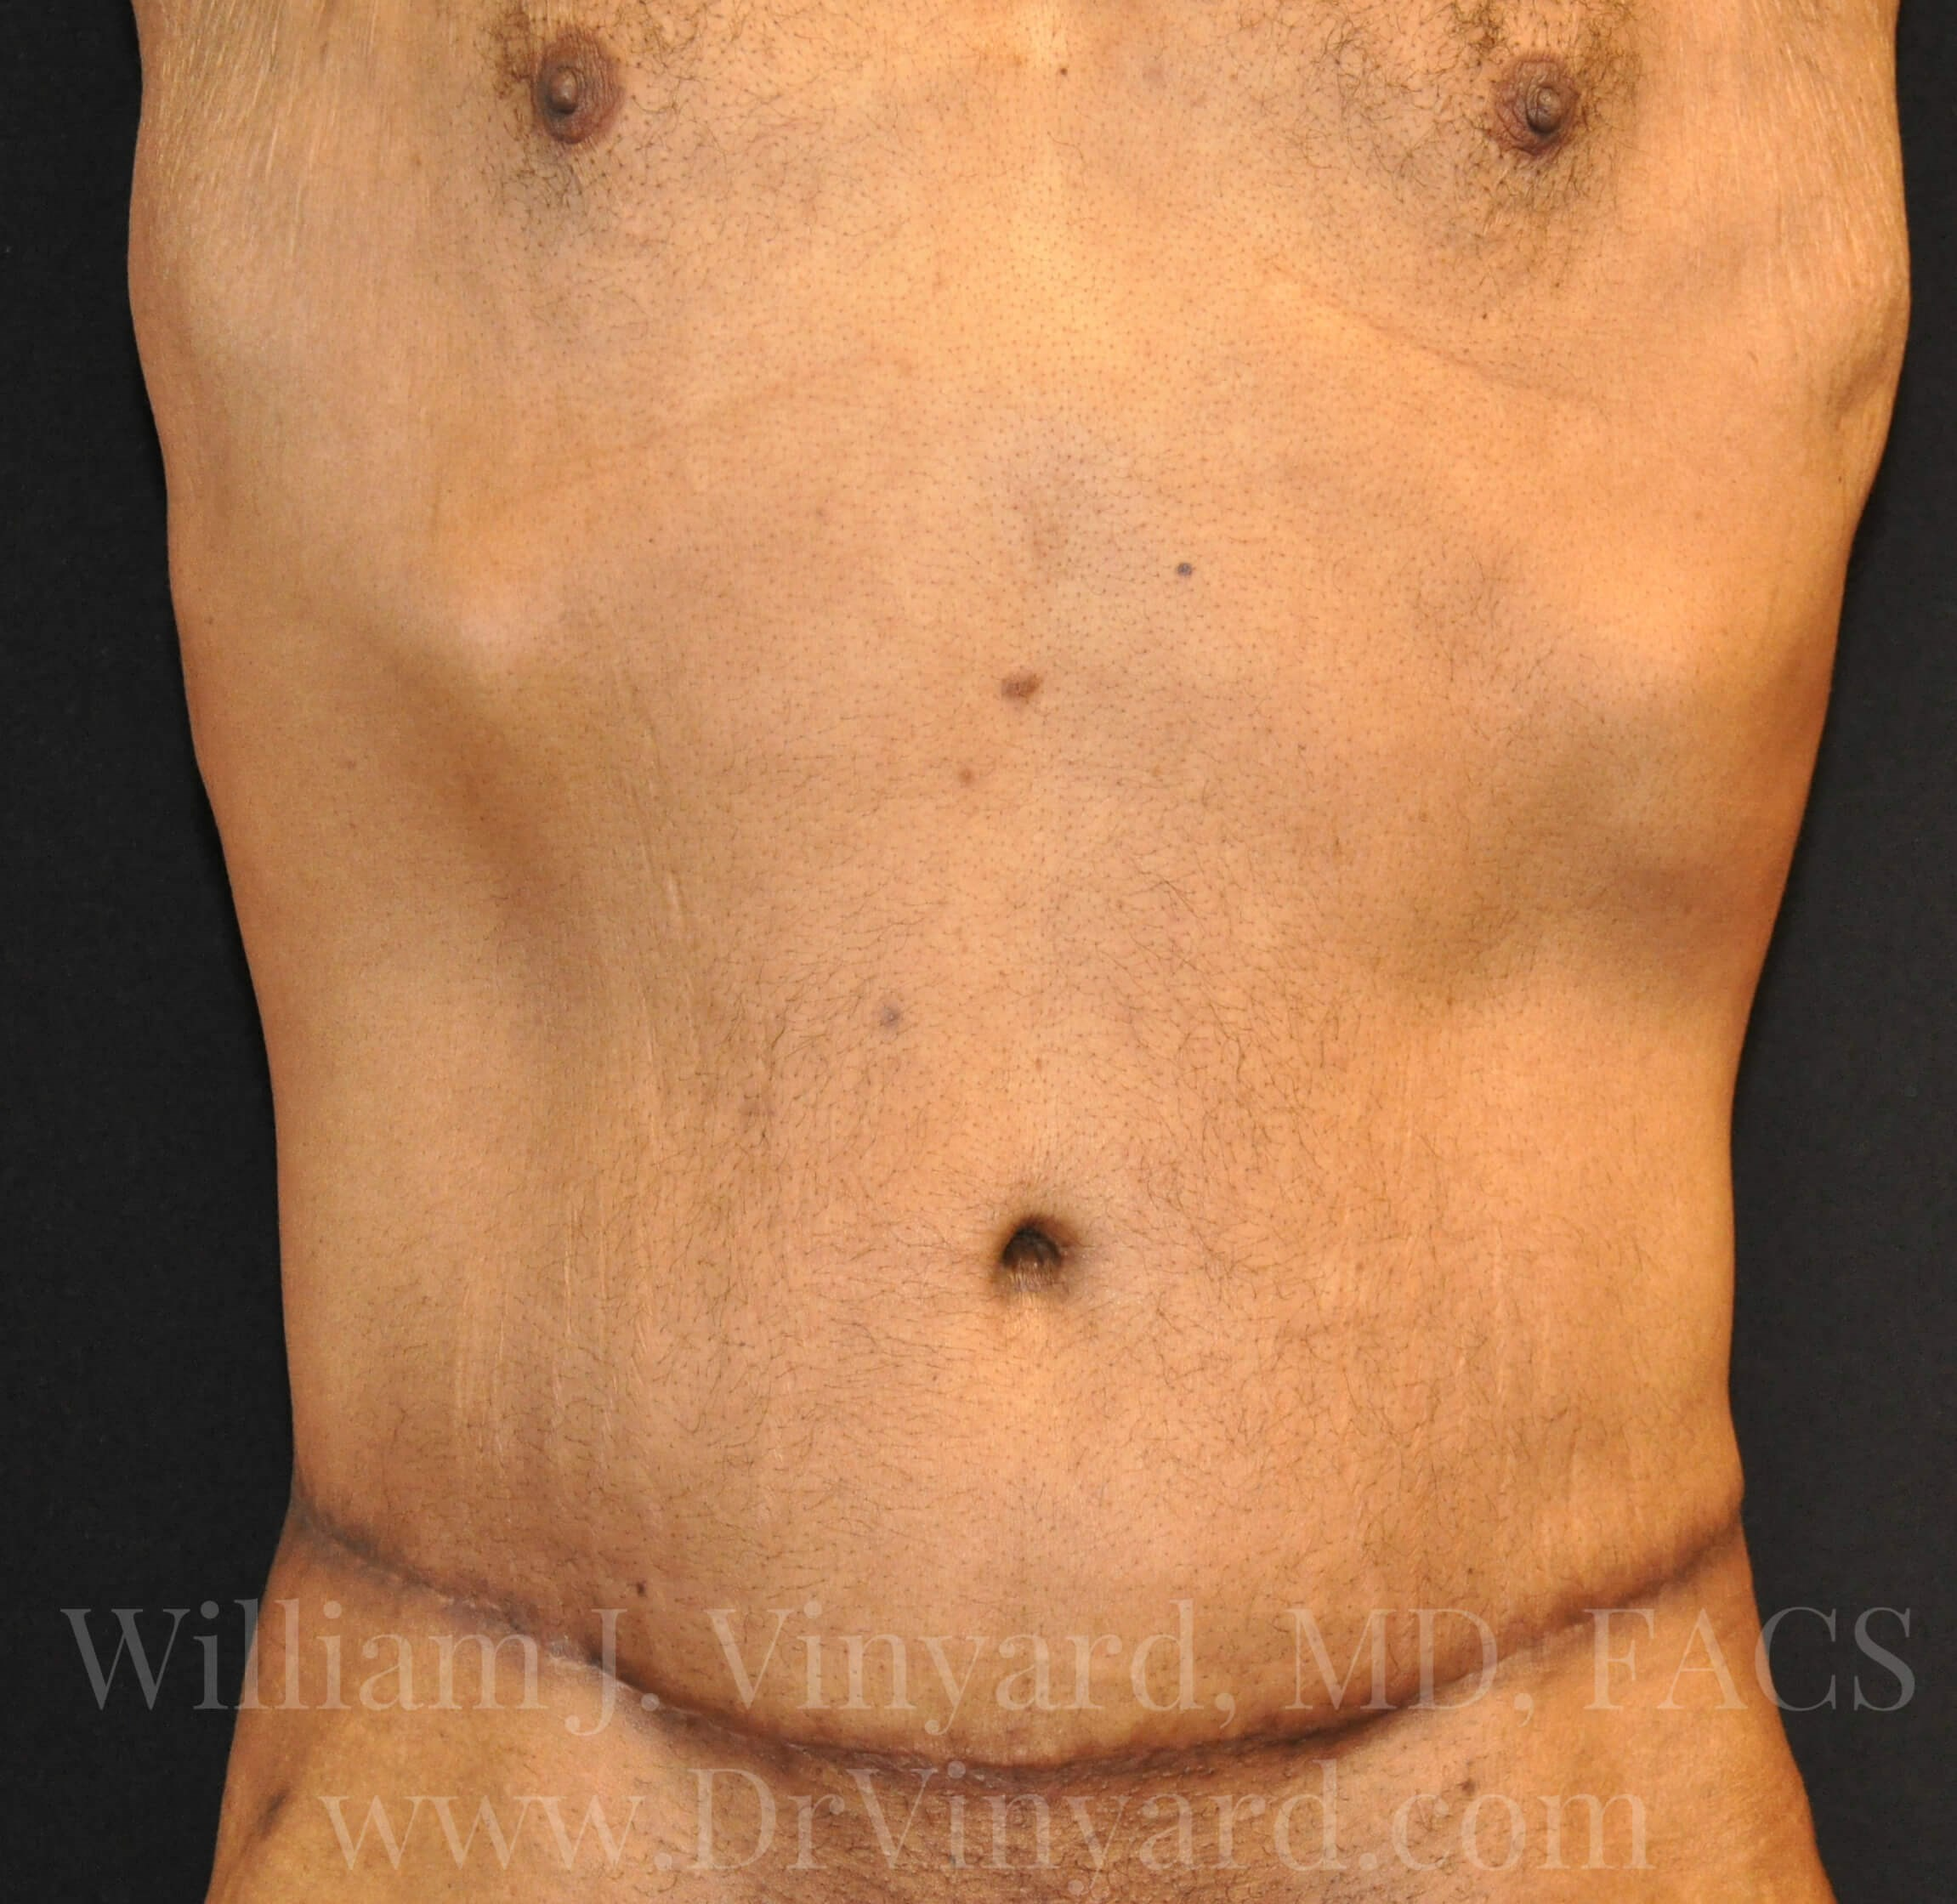 Front View - Abdomen After